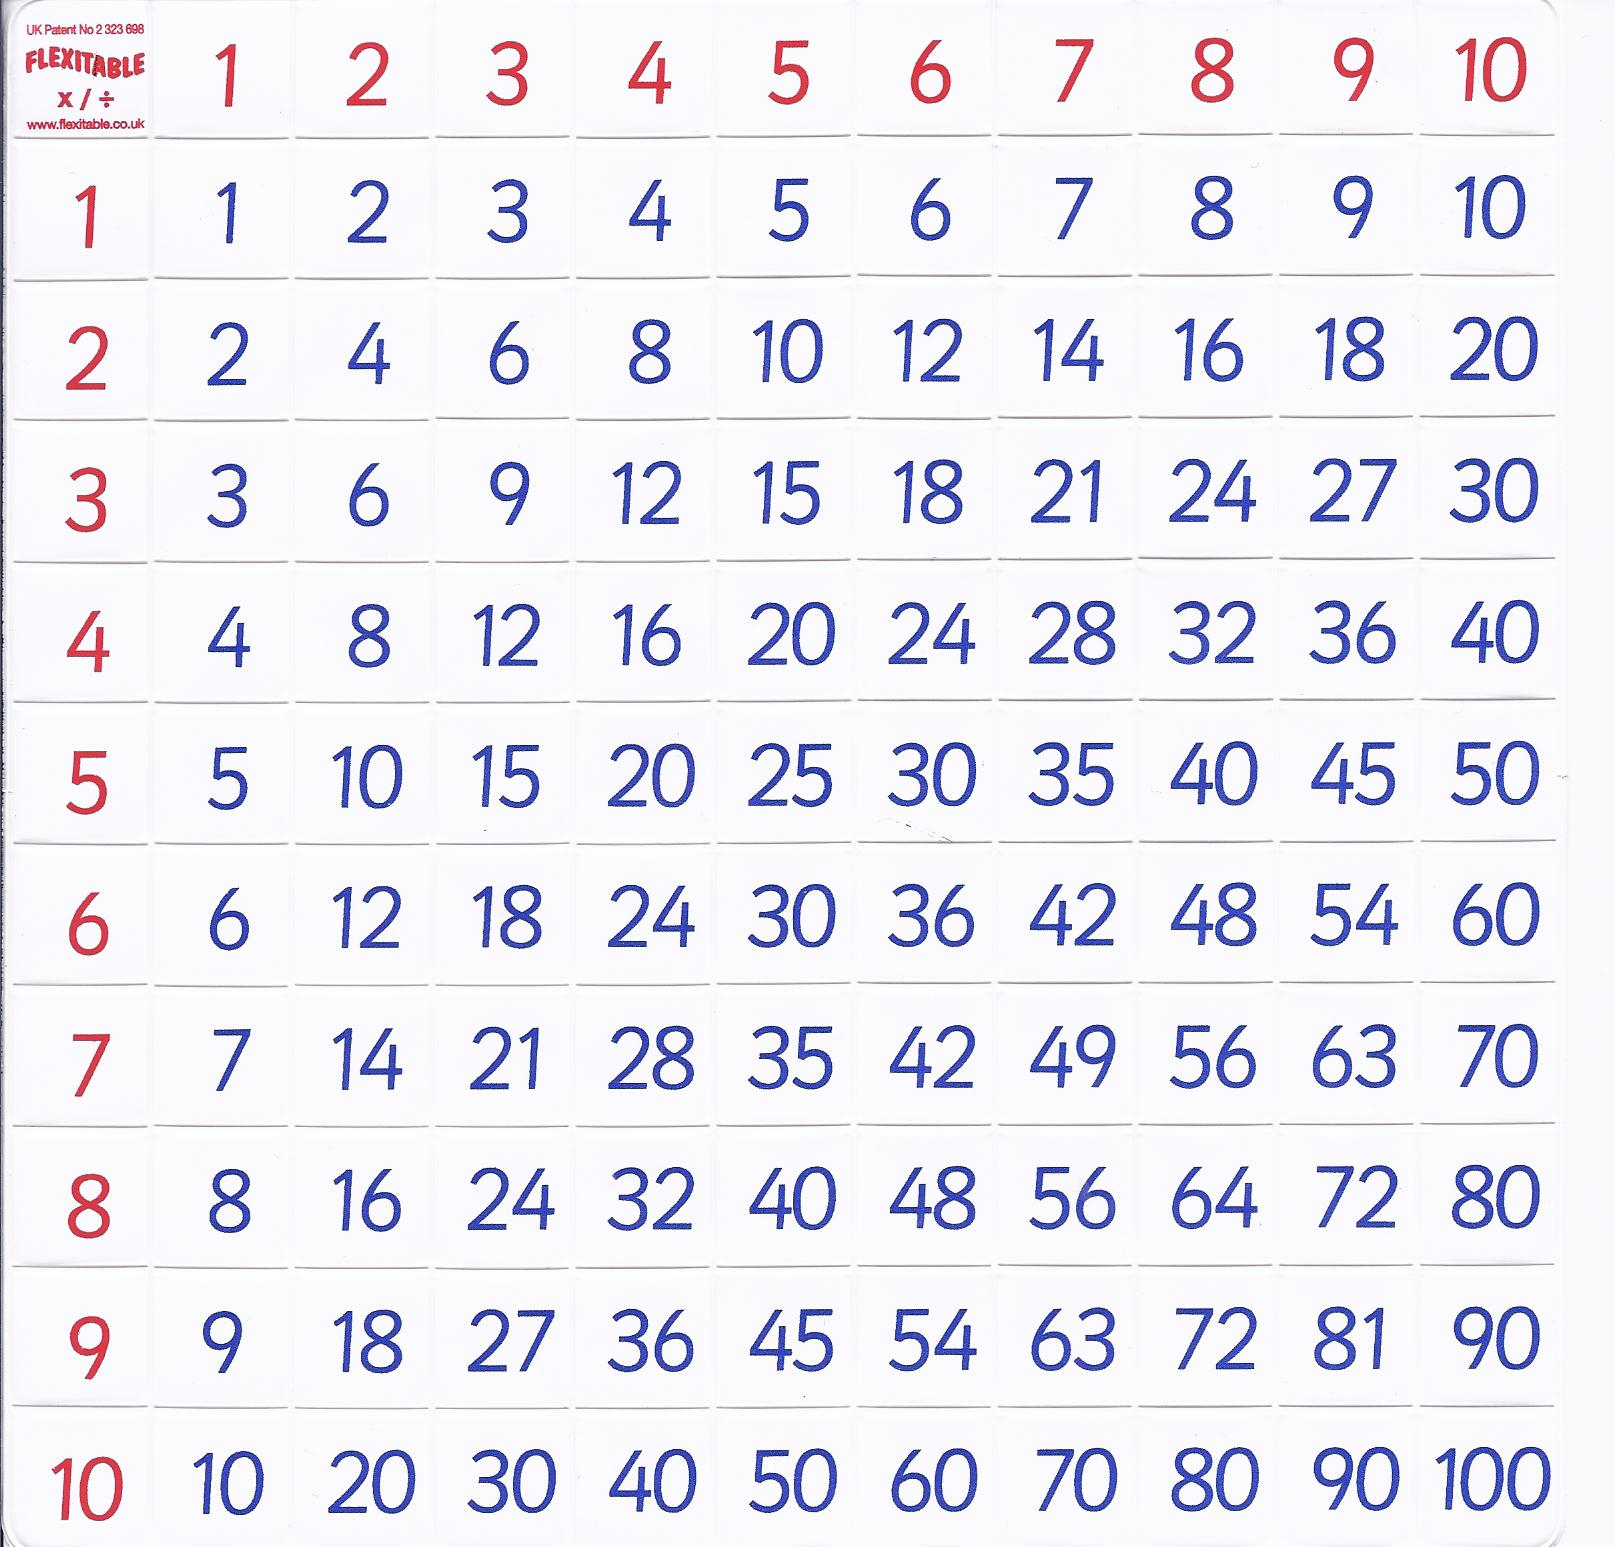 Flexitable - A Table Square 10 X 10 For Multiplication / Division